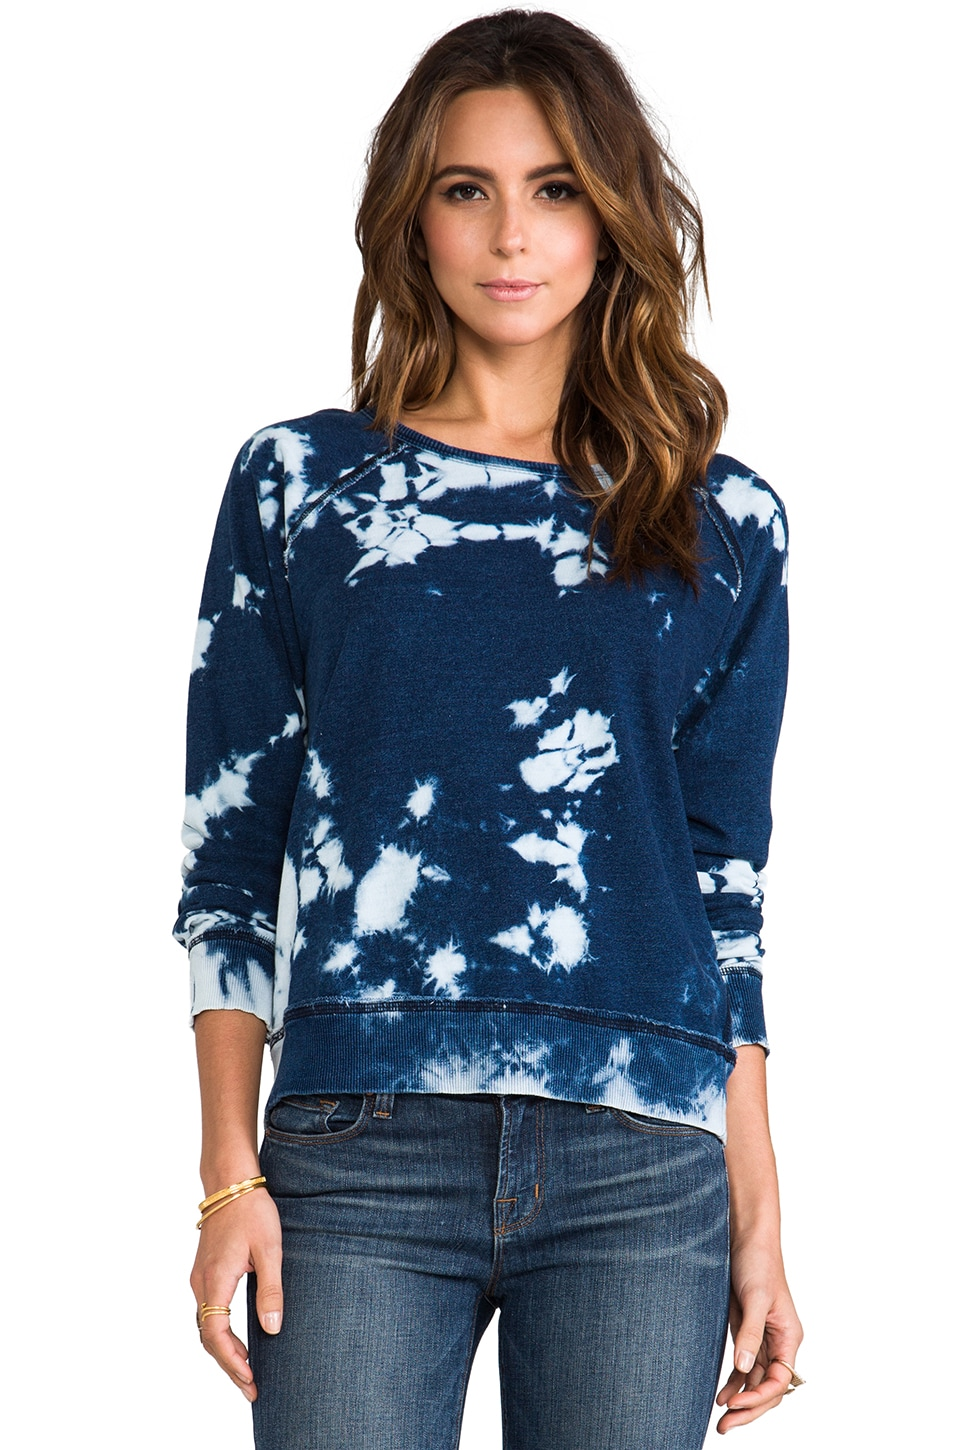 TEXTILE Elizabeth and James Perfect Sweatshirt in Blue Tie-Dye